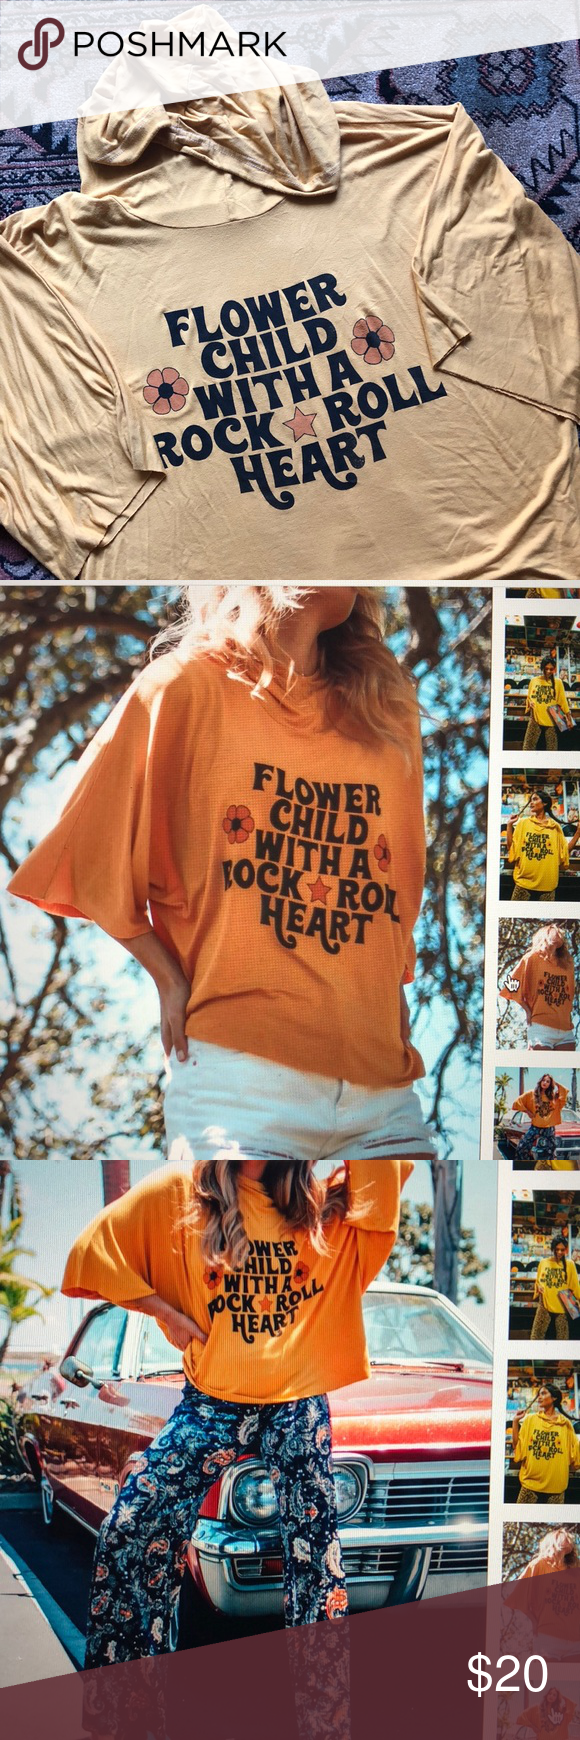 de601339 Flower child with a rock and roll heart Short sleeve with a hood. Wing  sleeves, slouchy fit. Yellow wash, brighter then mustard but not as dark  mustard as a ...